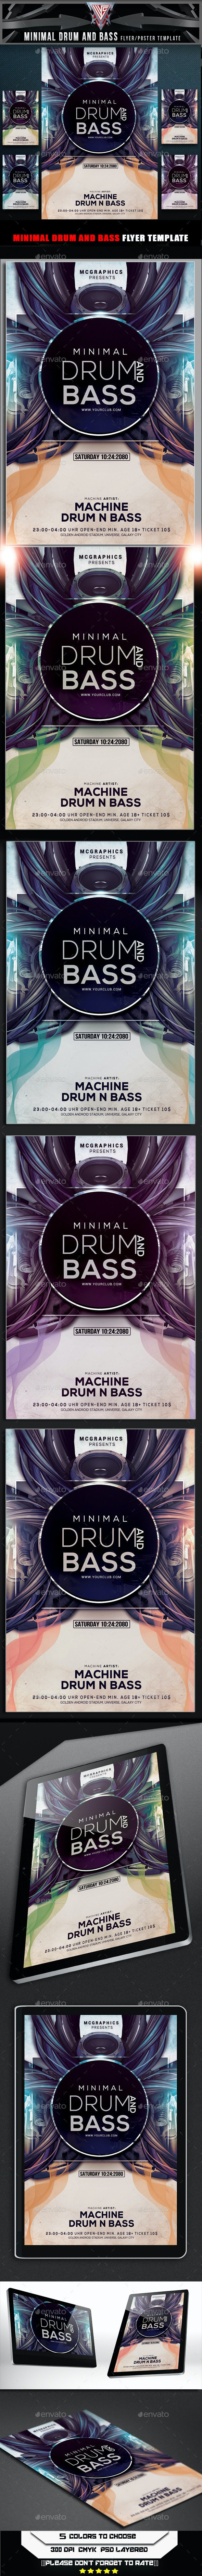 Minimal Drum and Bass Flyer Template - Flyers Print Templates